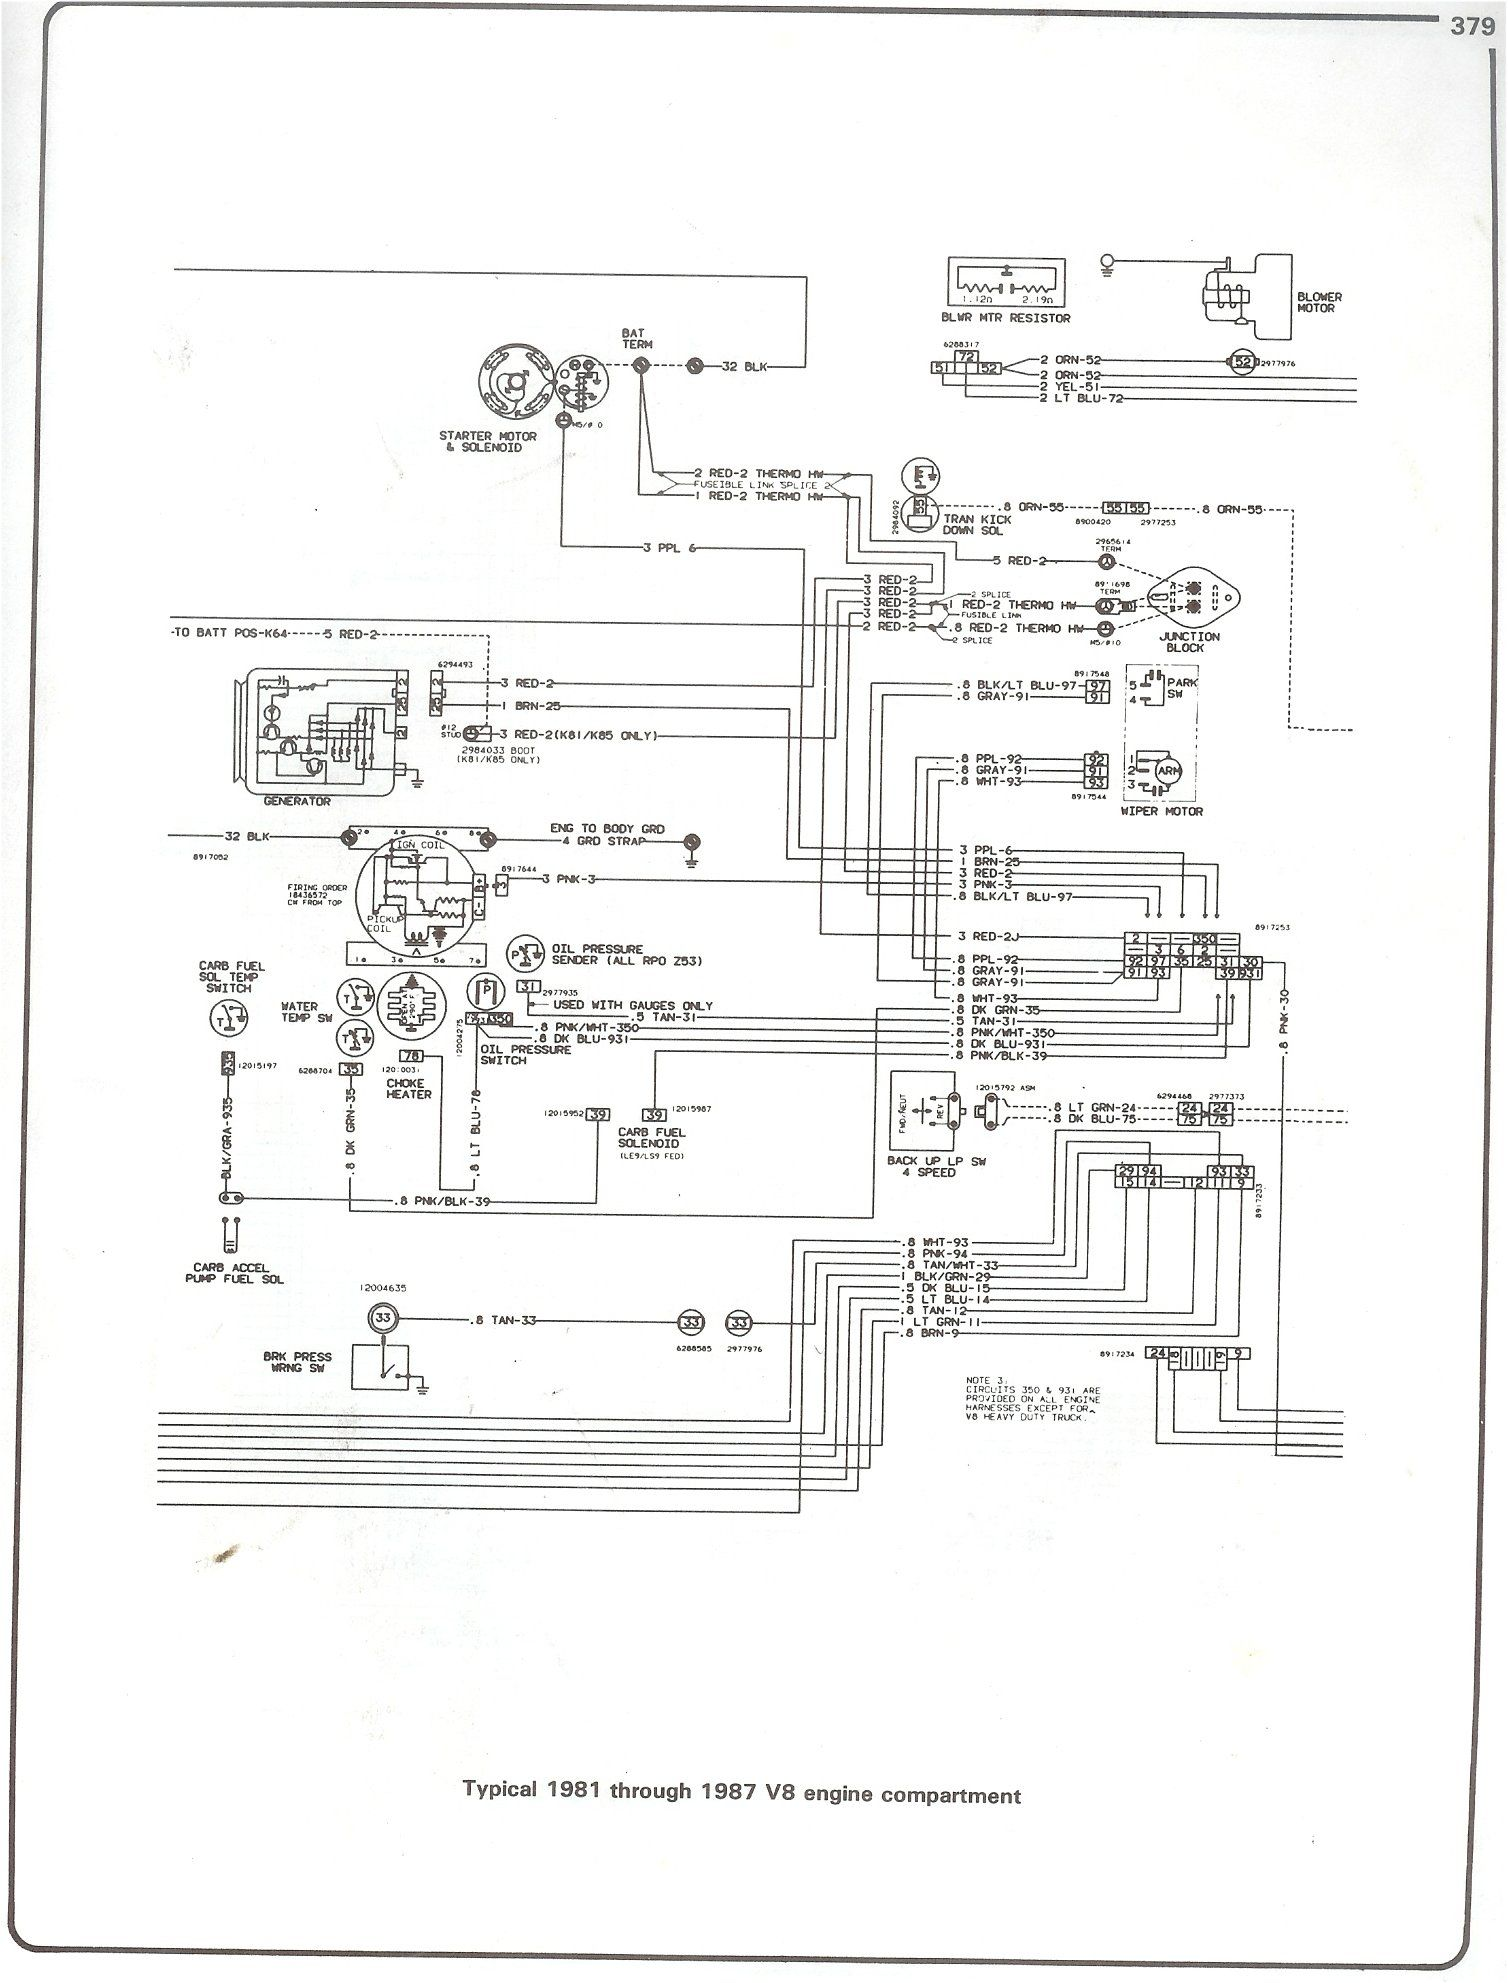 73 chevy c10 wire diagram trusted wiring diagrams u2022 rh autoglas stadtroda de